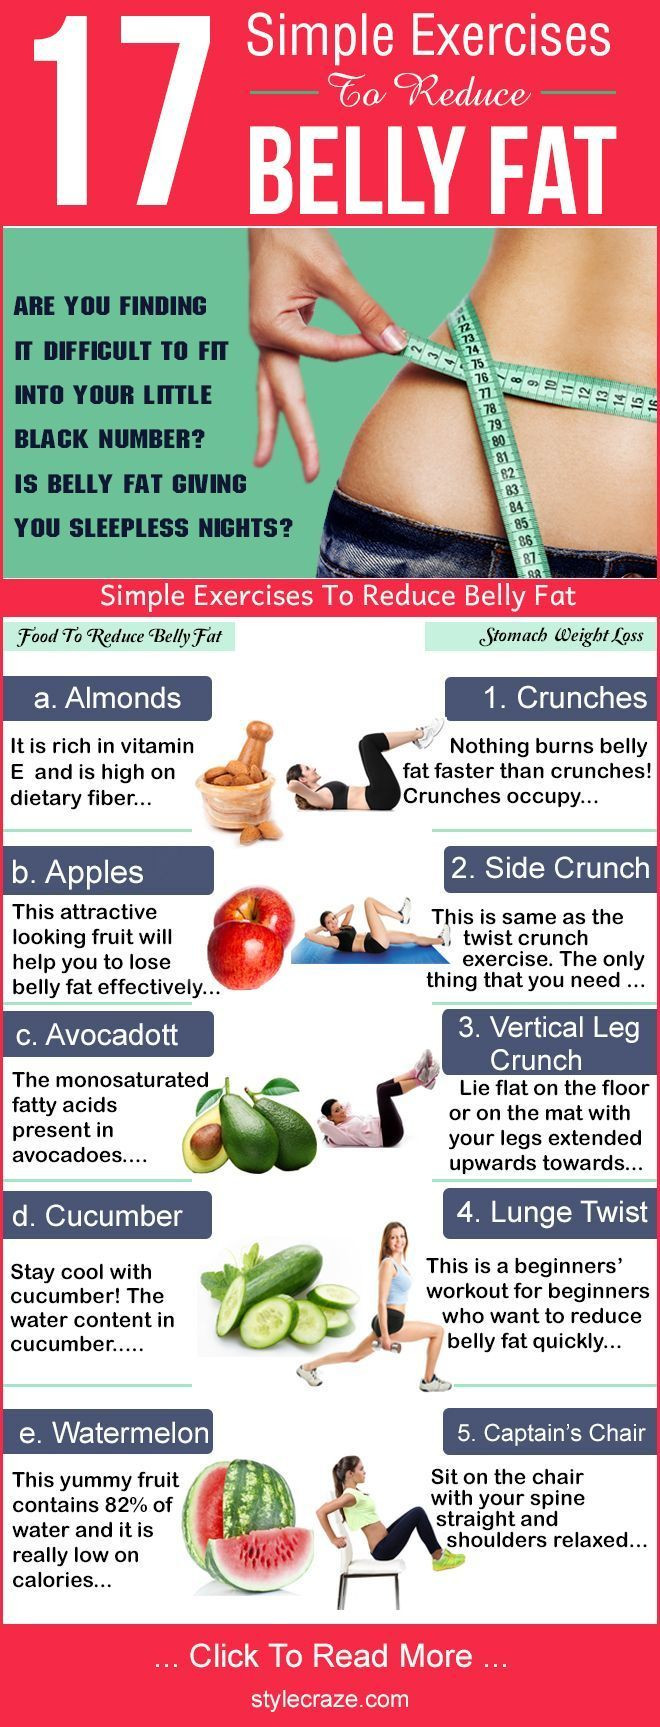 How To Lose Belly Fat For Women Over 40  16 Simple Exercises To Reduce Belly Fat